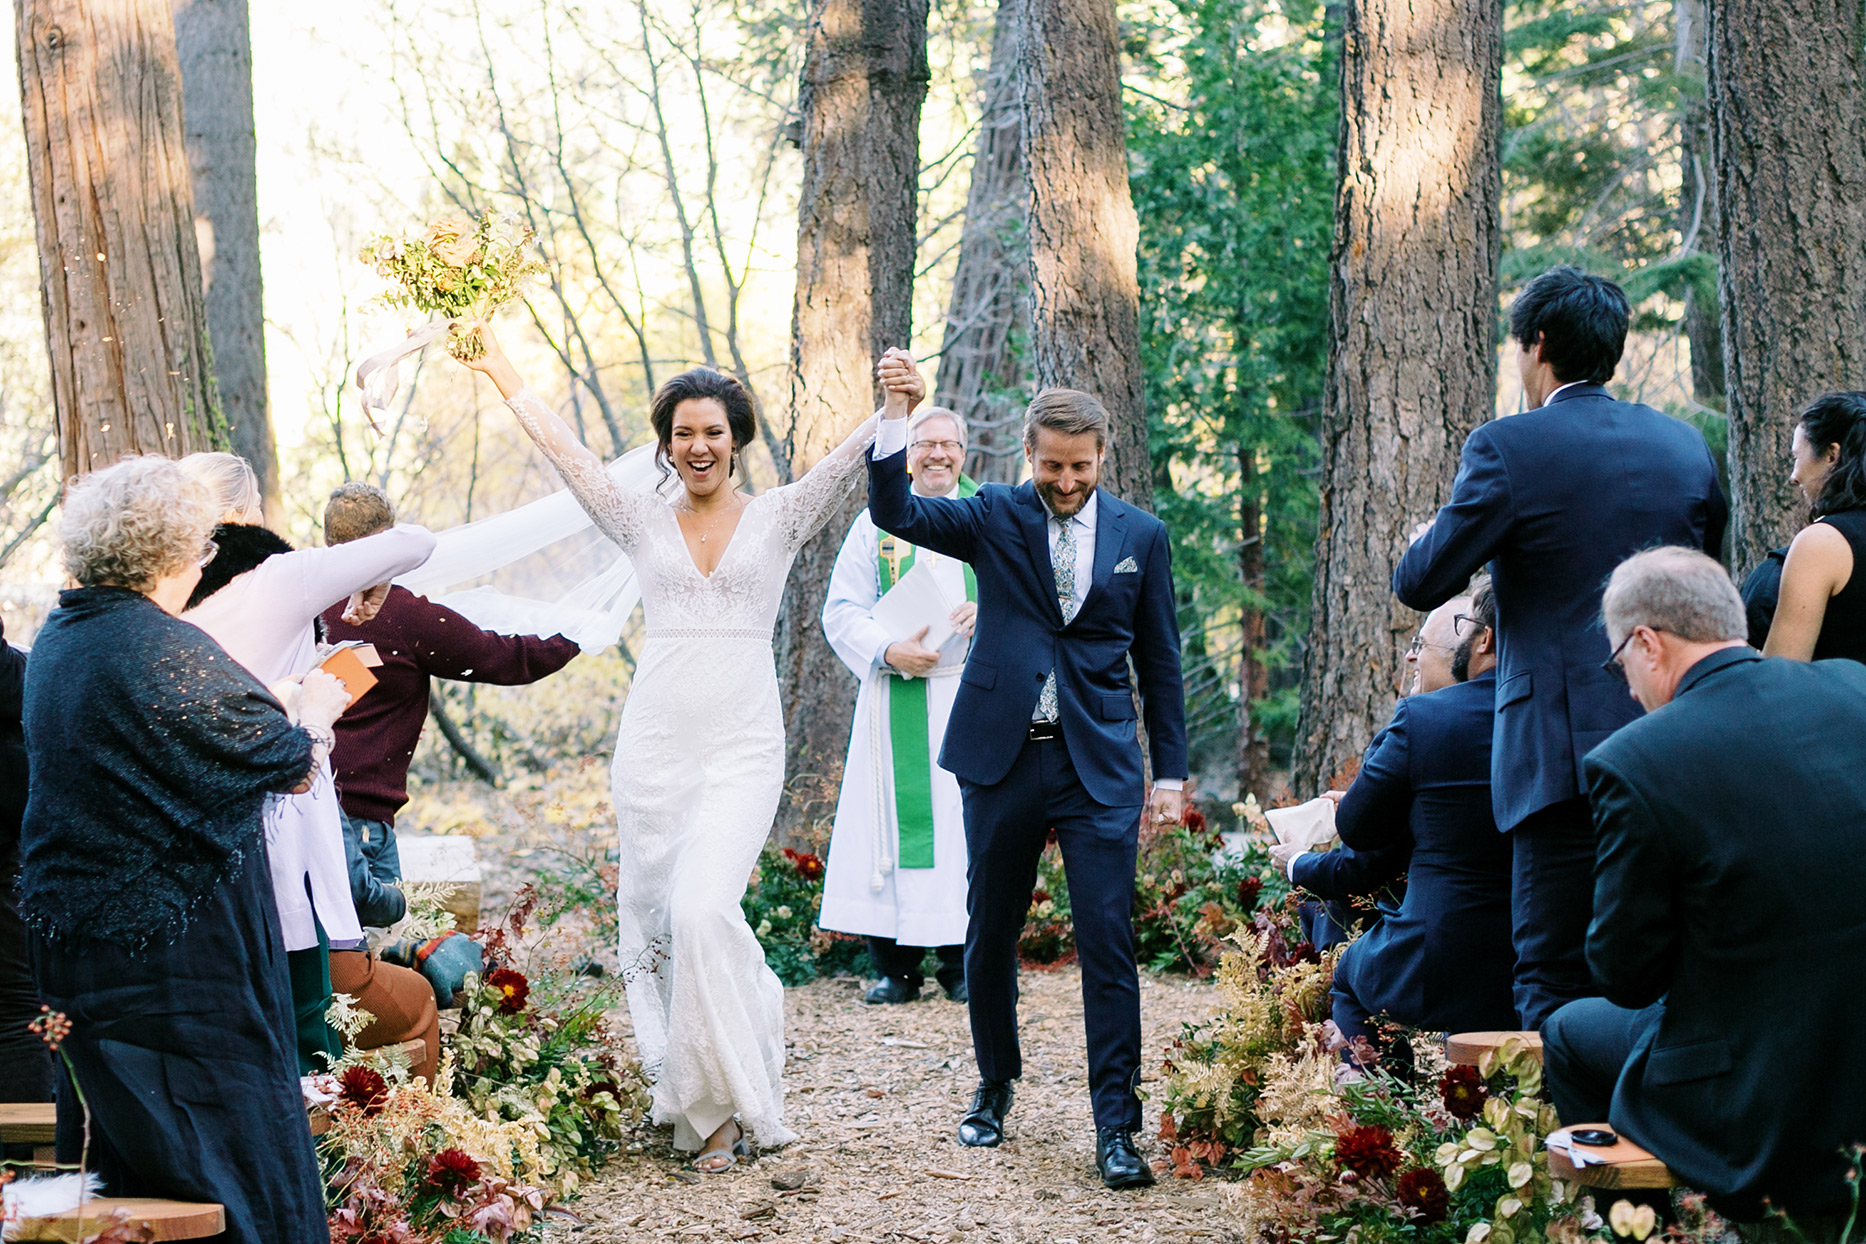 couple raising hands in excitement as they are announced at ceremony